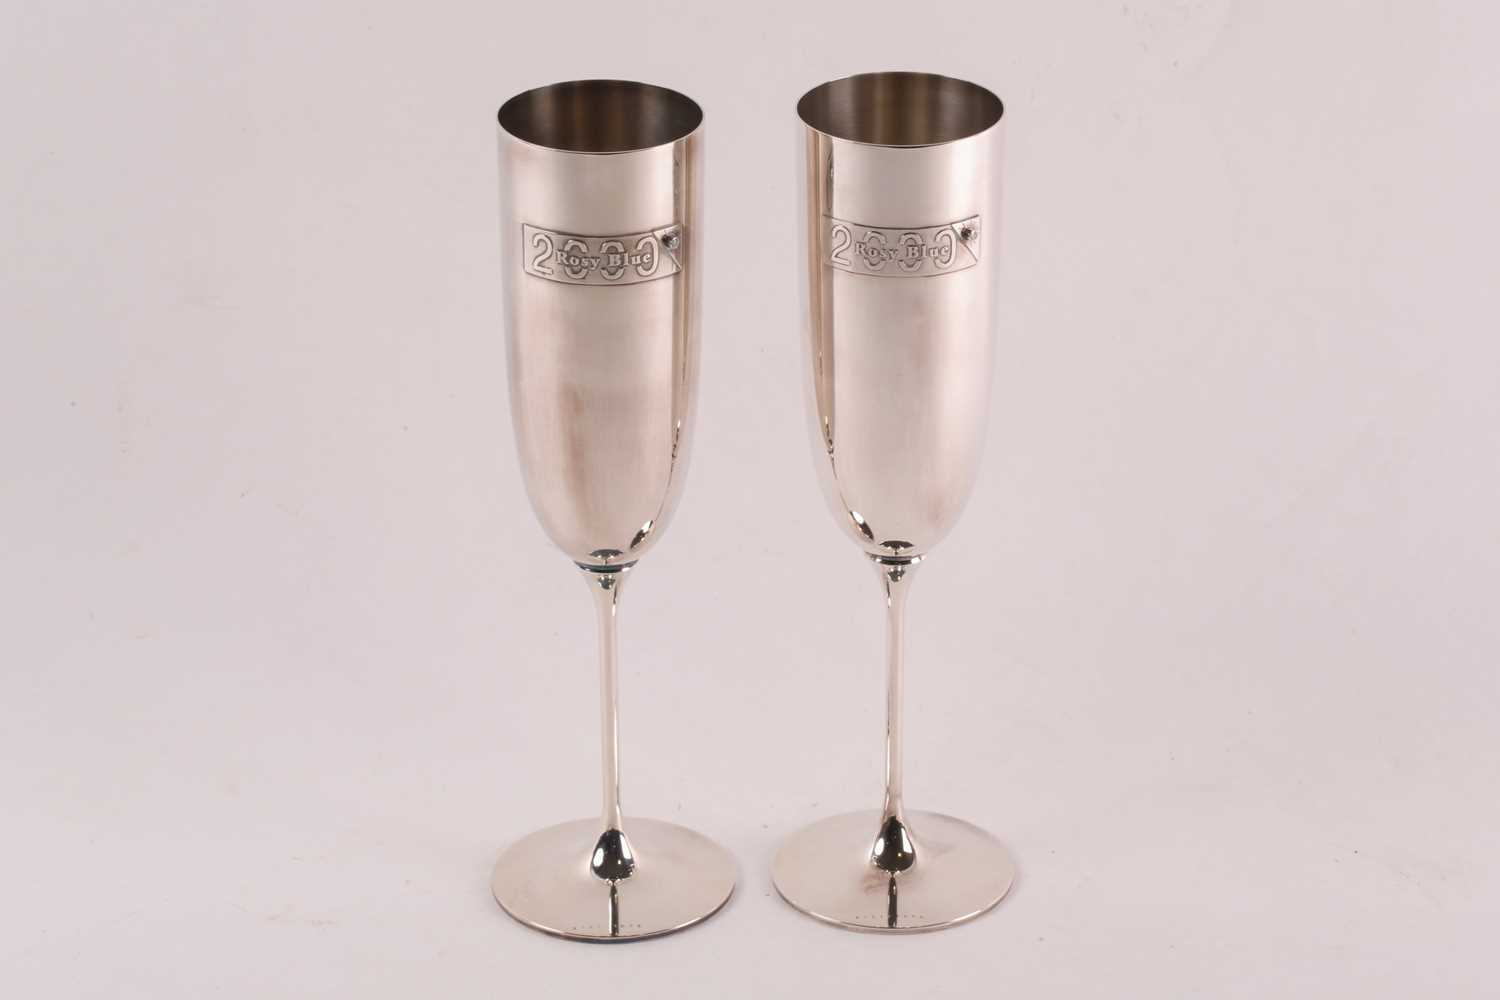 A pair of commemorative limited edition silver champagne flutes; with applied plaques reading '